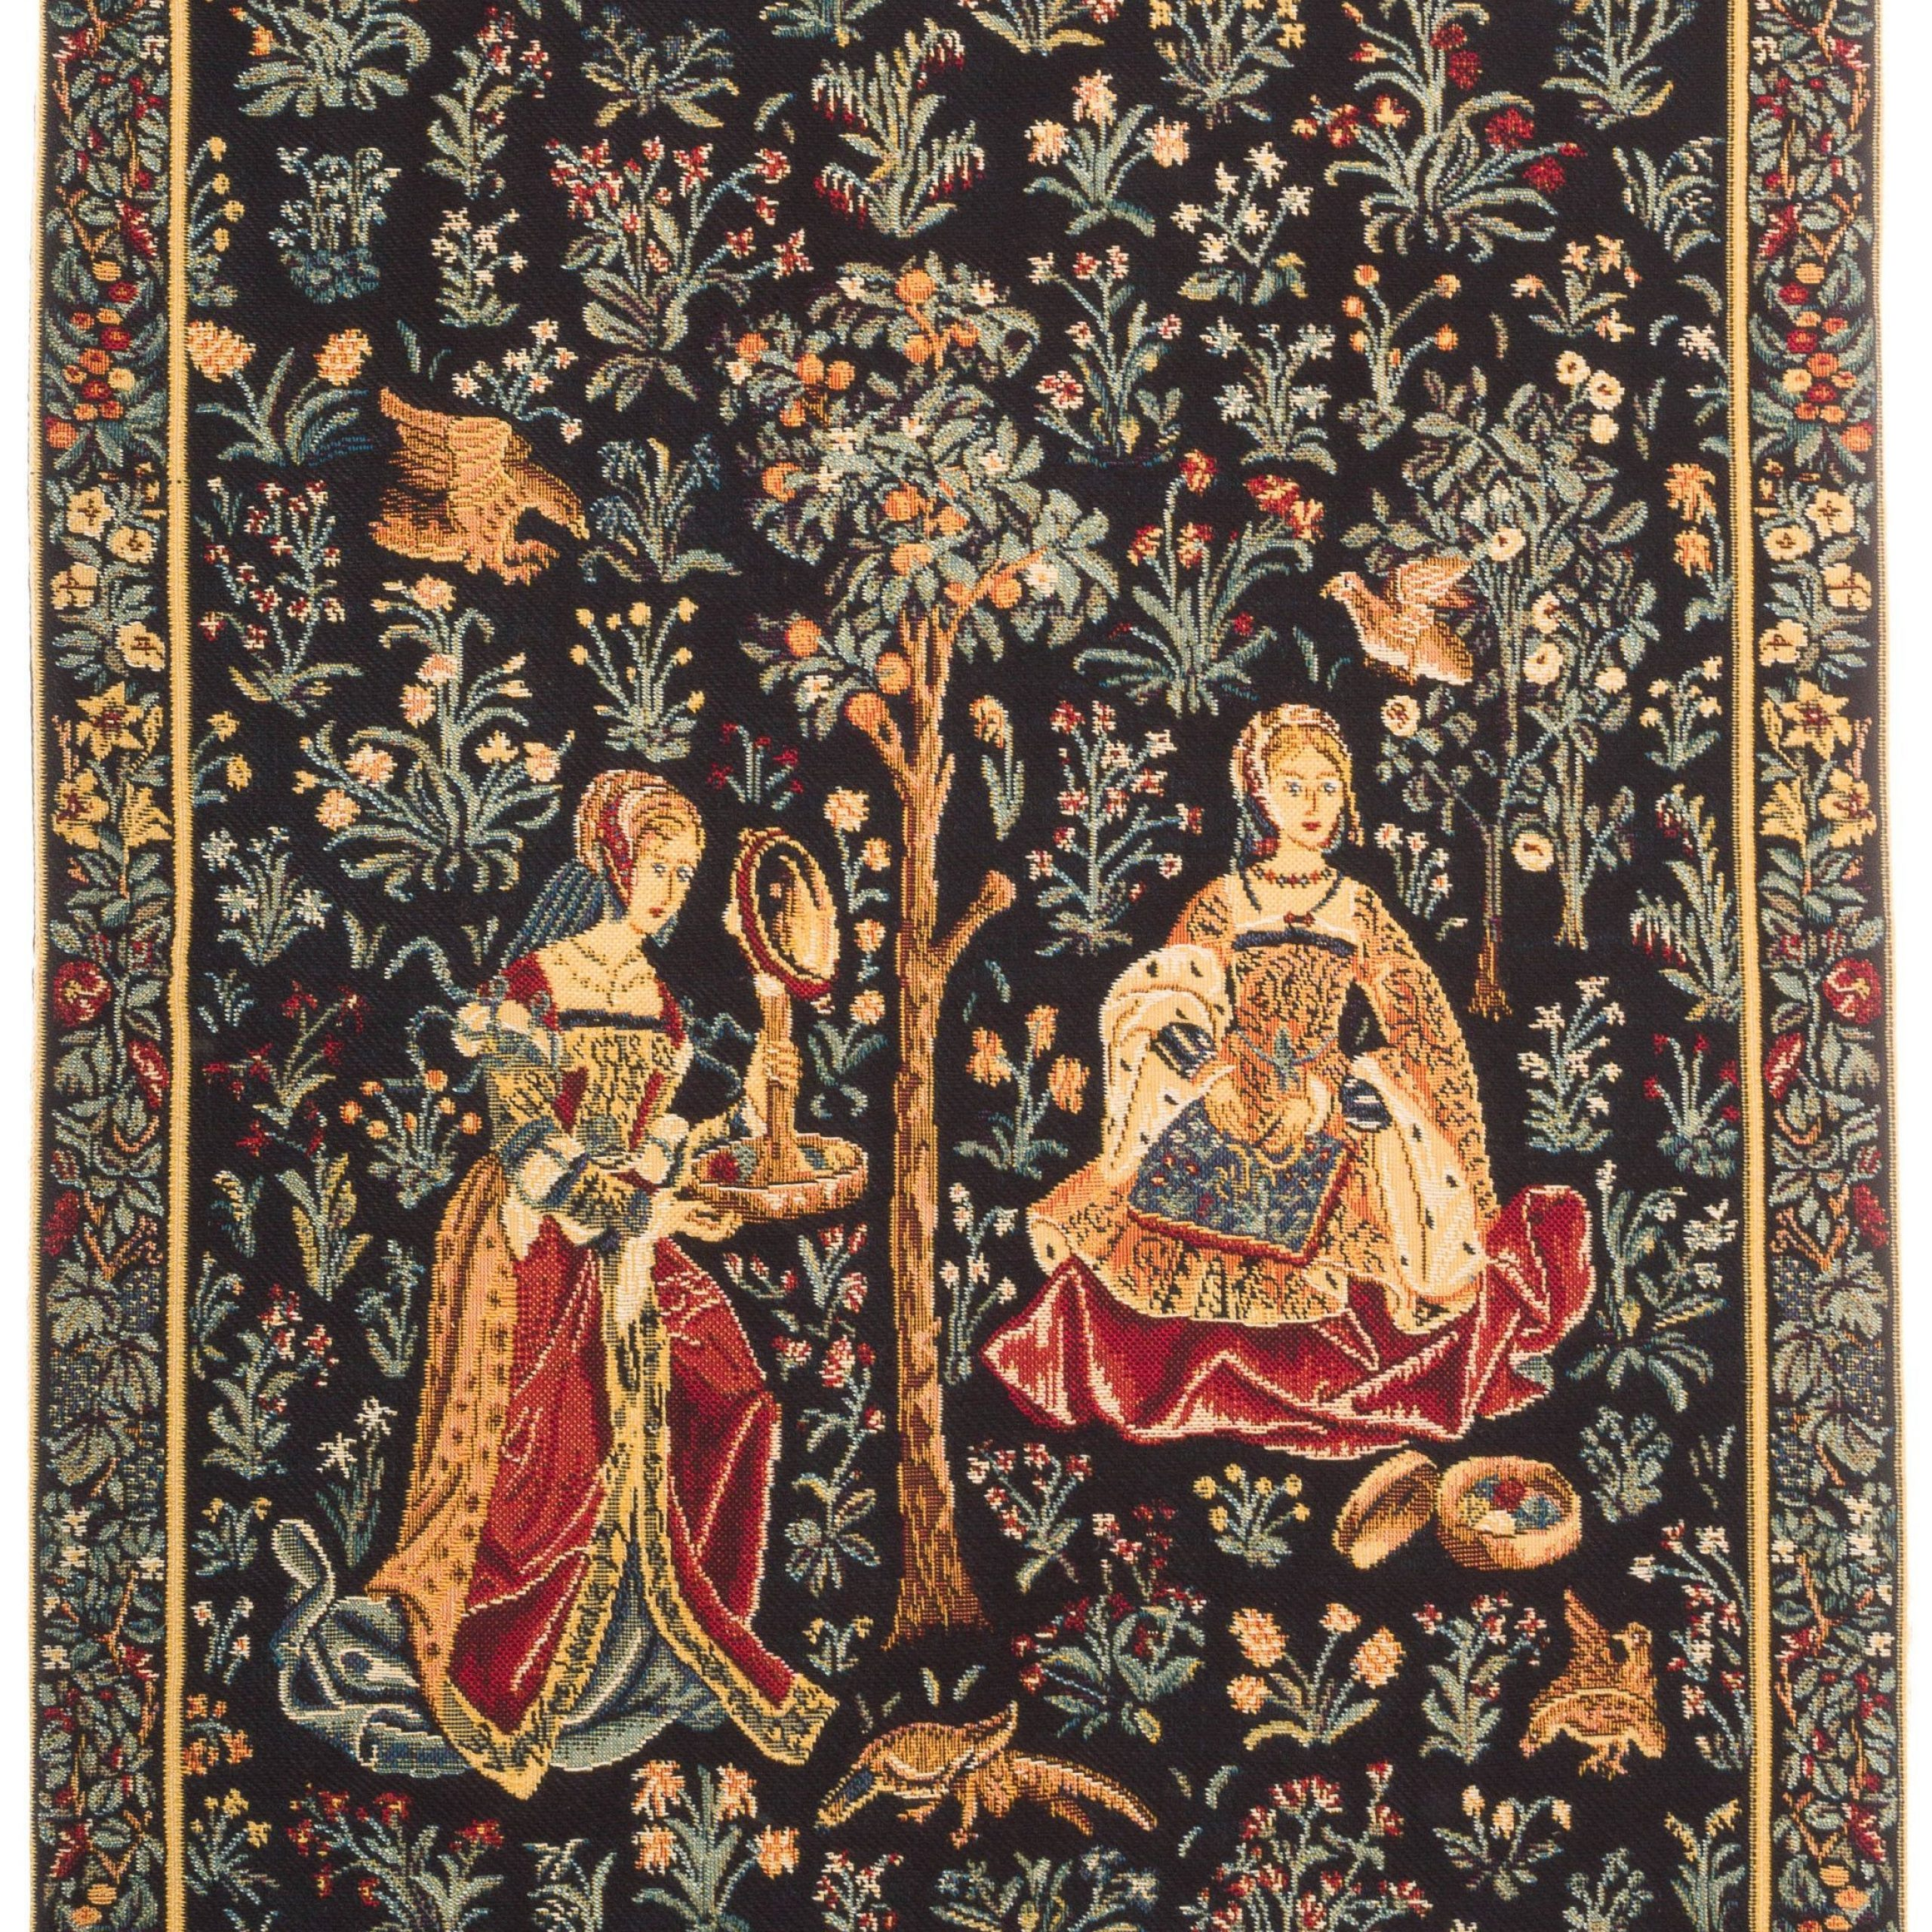 Blended Fabric Italian Wall Hangings Throughout Fashionable Medieval Tapestry Wall Hanging – Embroidery Scene (View 15 of 20)